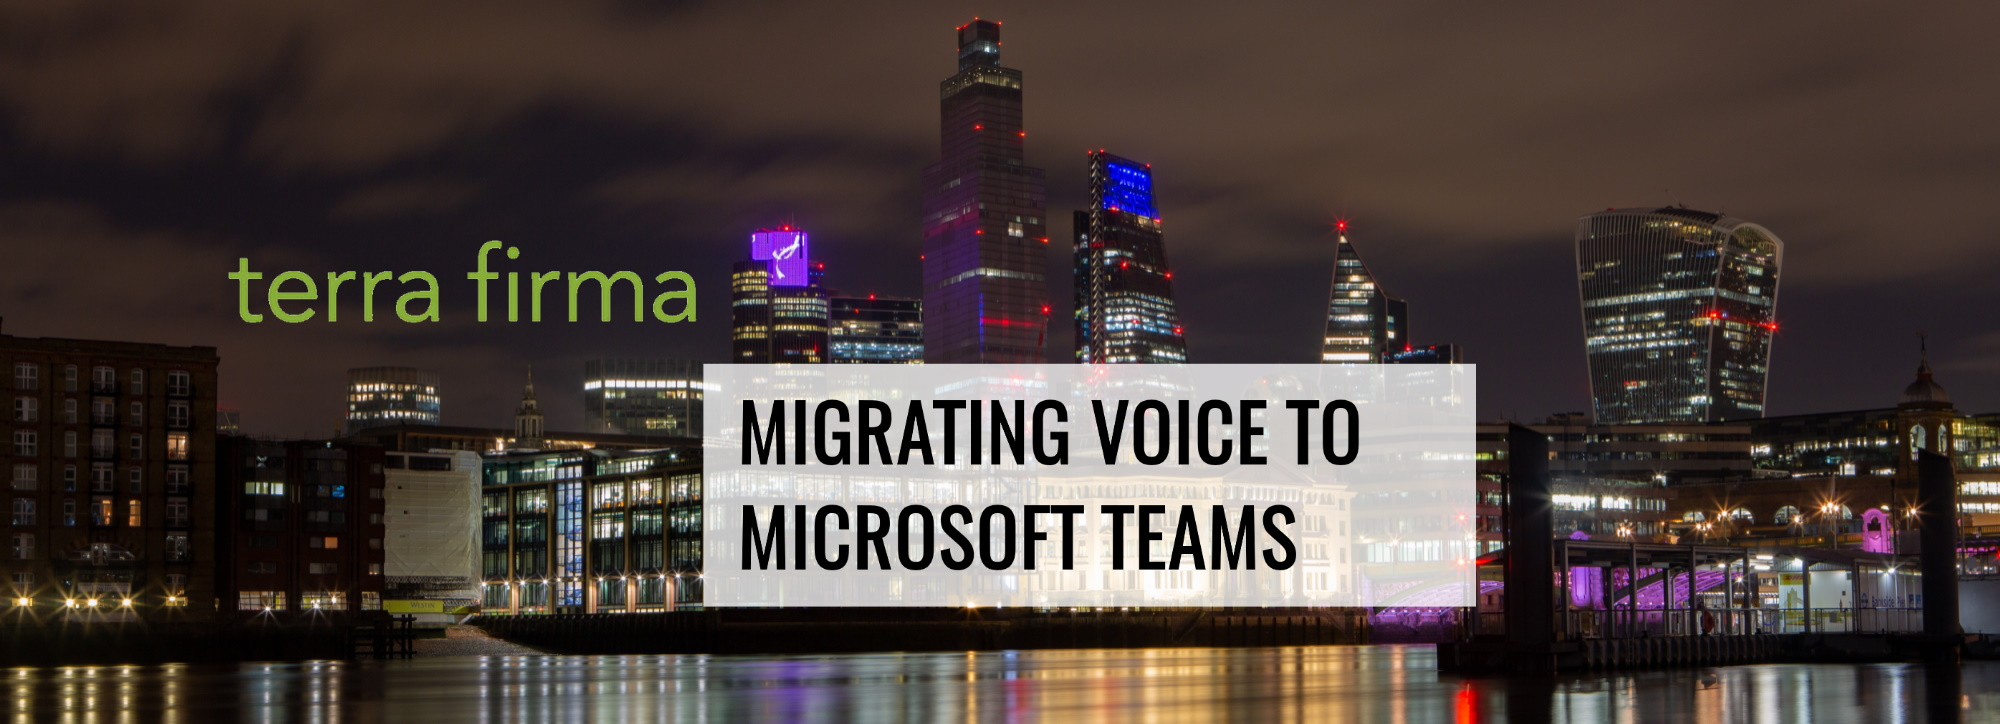 Migrating Voice to Microsoft Teams